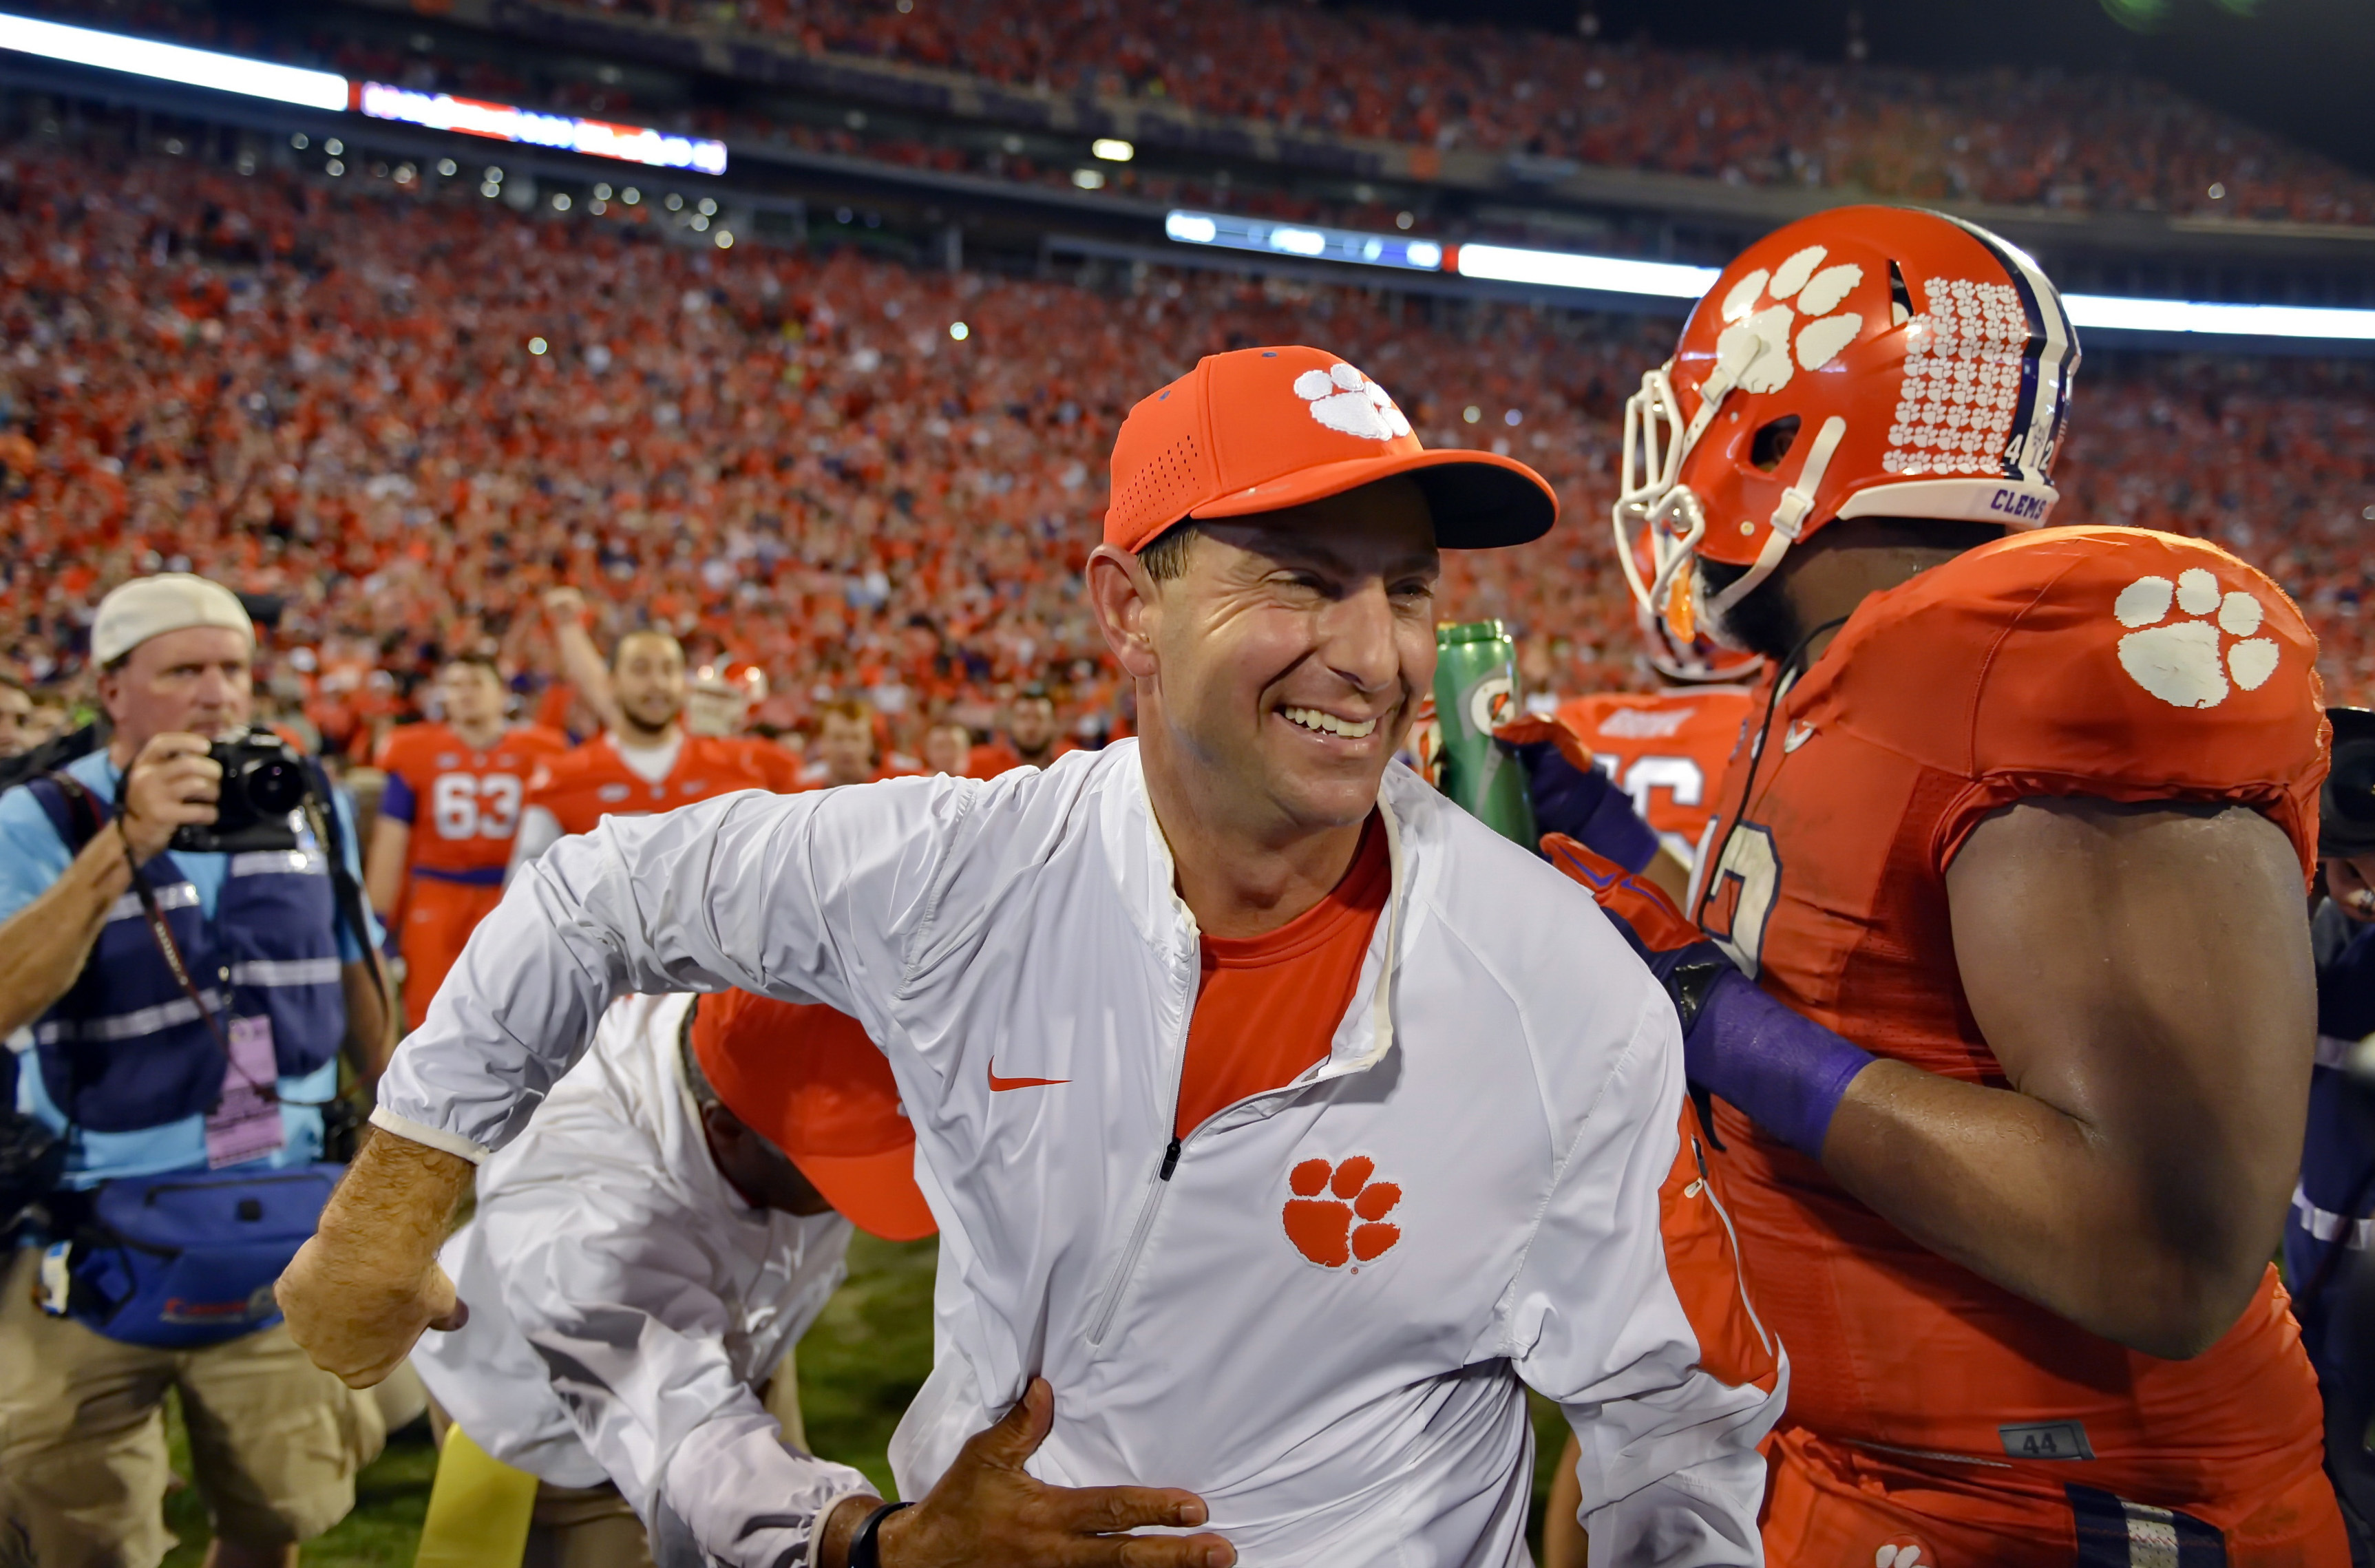 FILE - In this Nov. 7, 2015, file photo, Clemson head coach Dabo Swinney celebrates after their 23-17 win over Florida State in an NCAA college football game in Clemson, S.C. Alabama is No. 1 in The Associated Press preseason Top 25. Clemson is No. 2. (AP